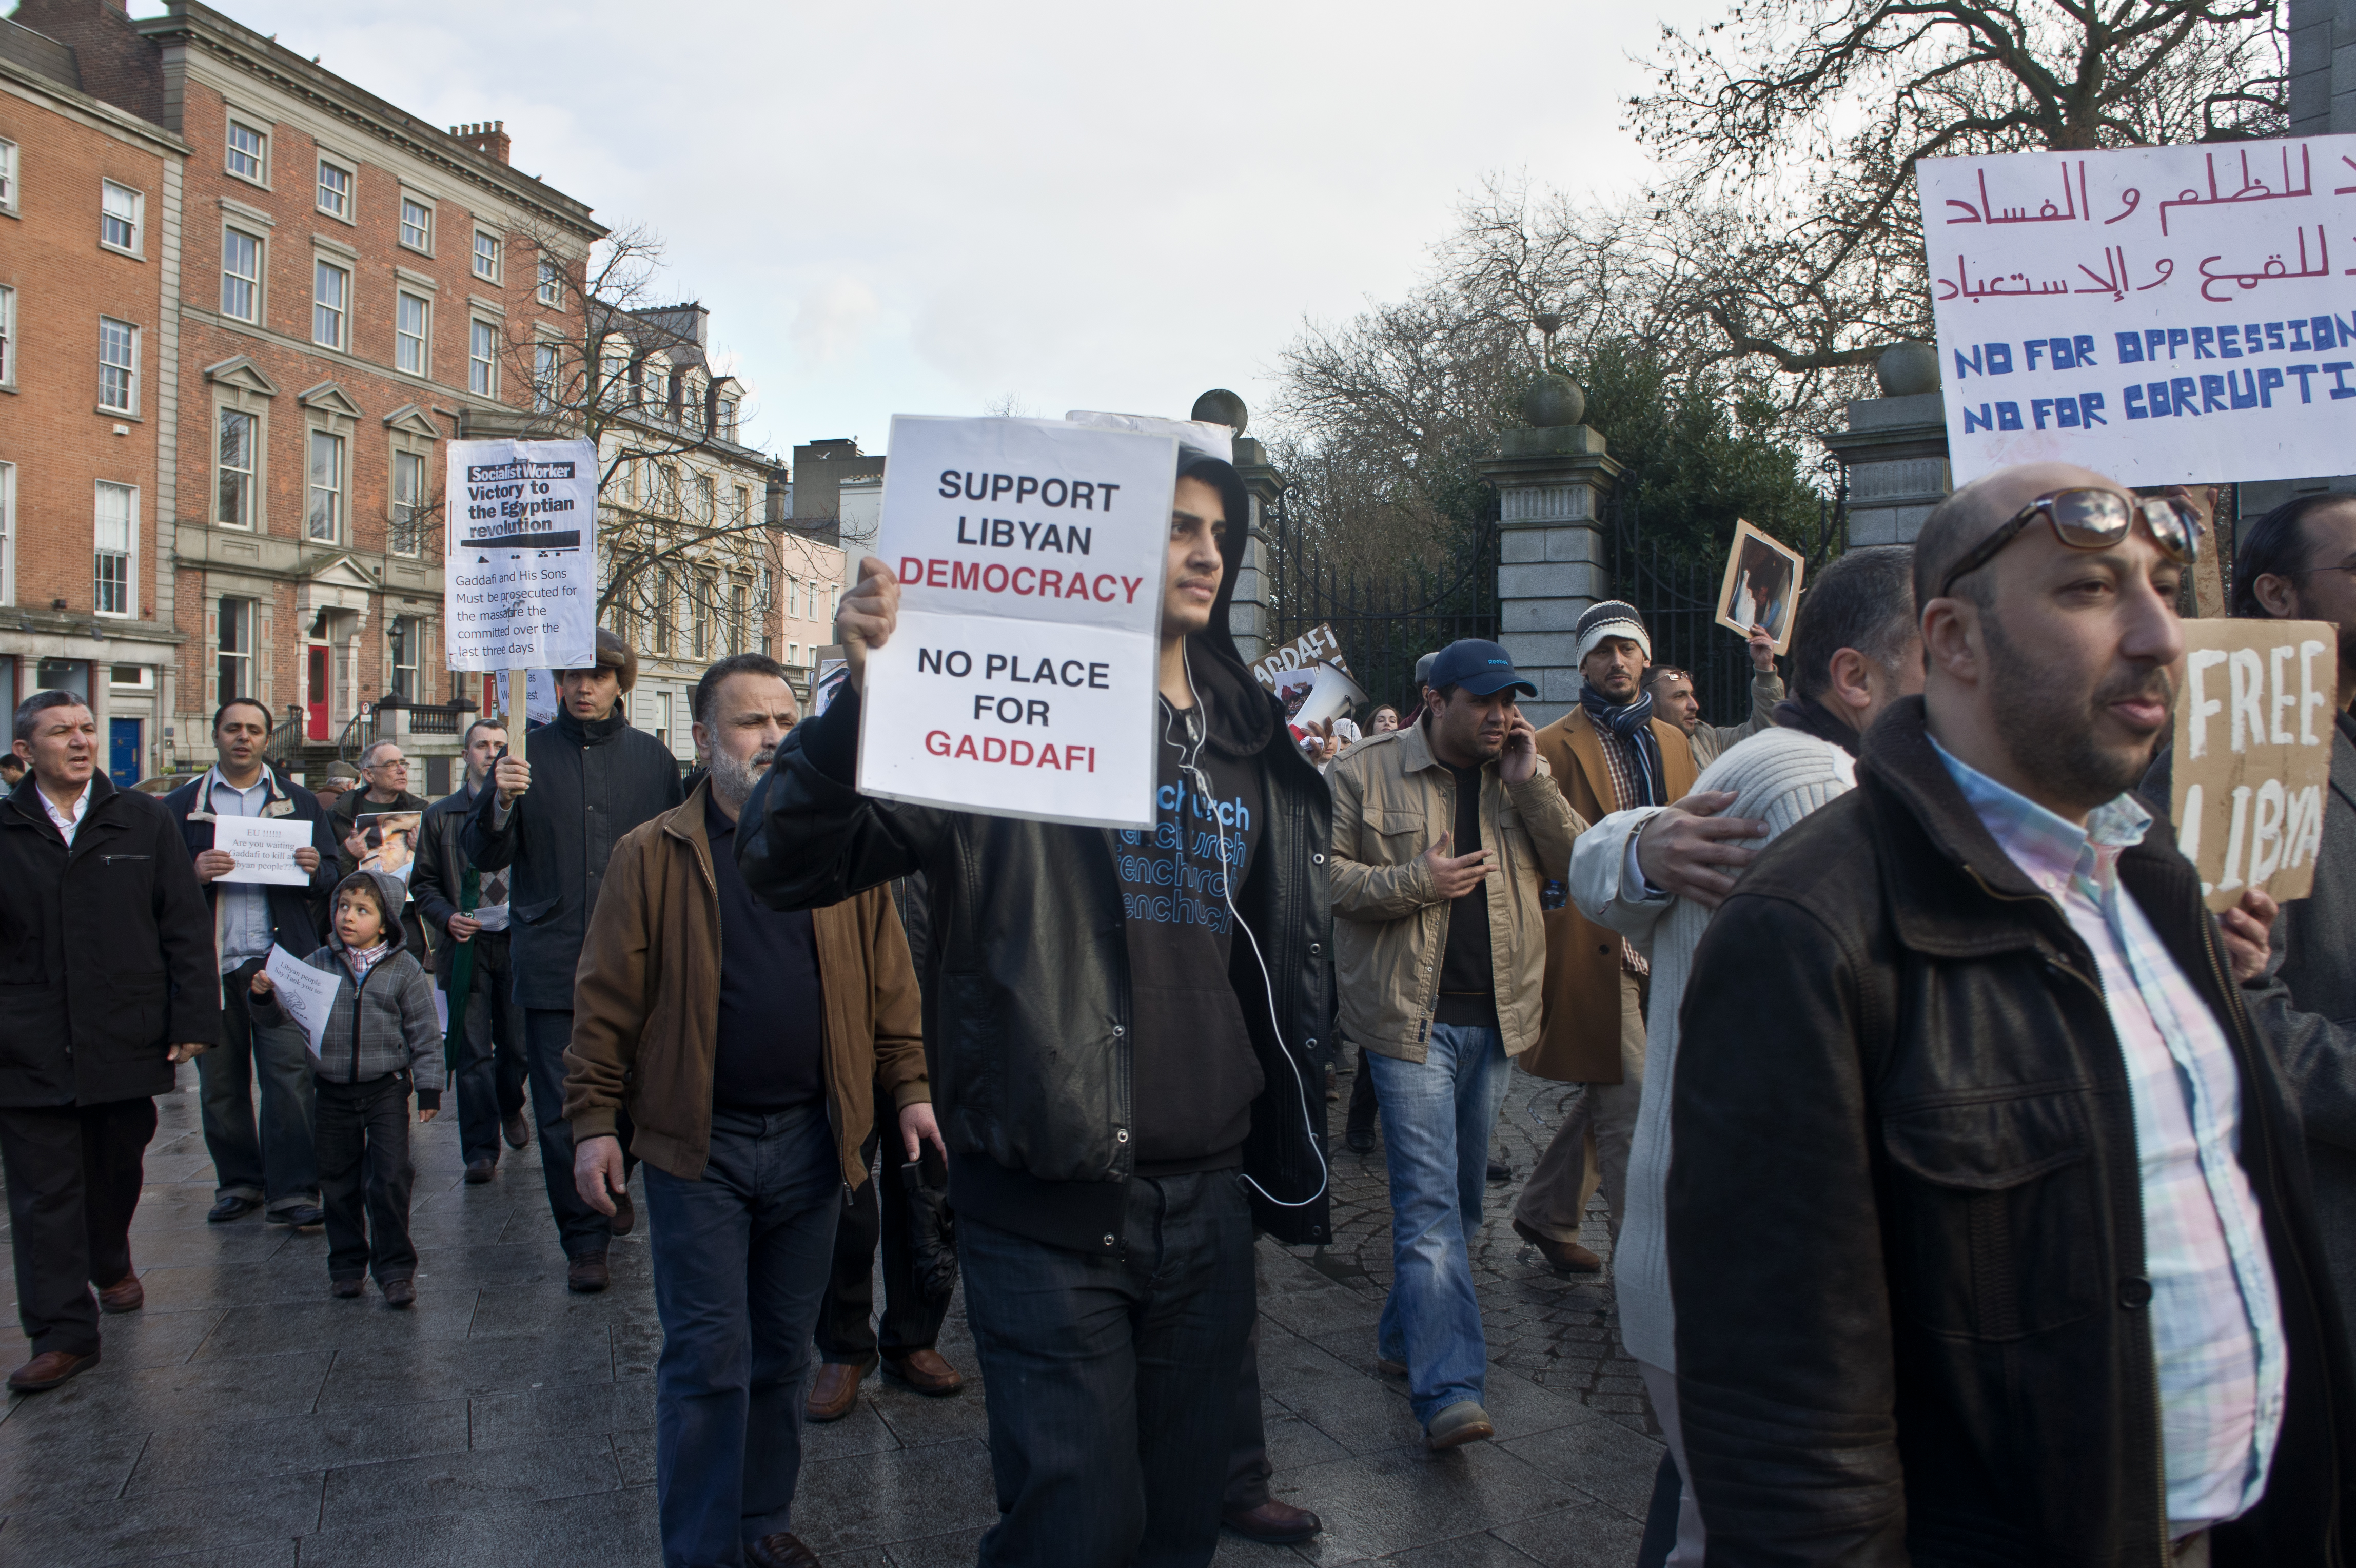 Libyans In Dublin March In Protest Against Gadaffi